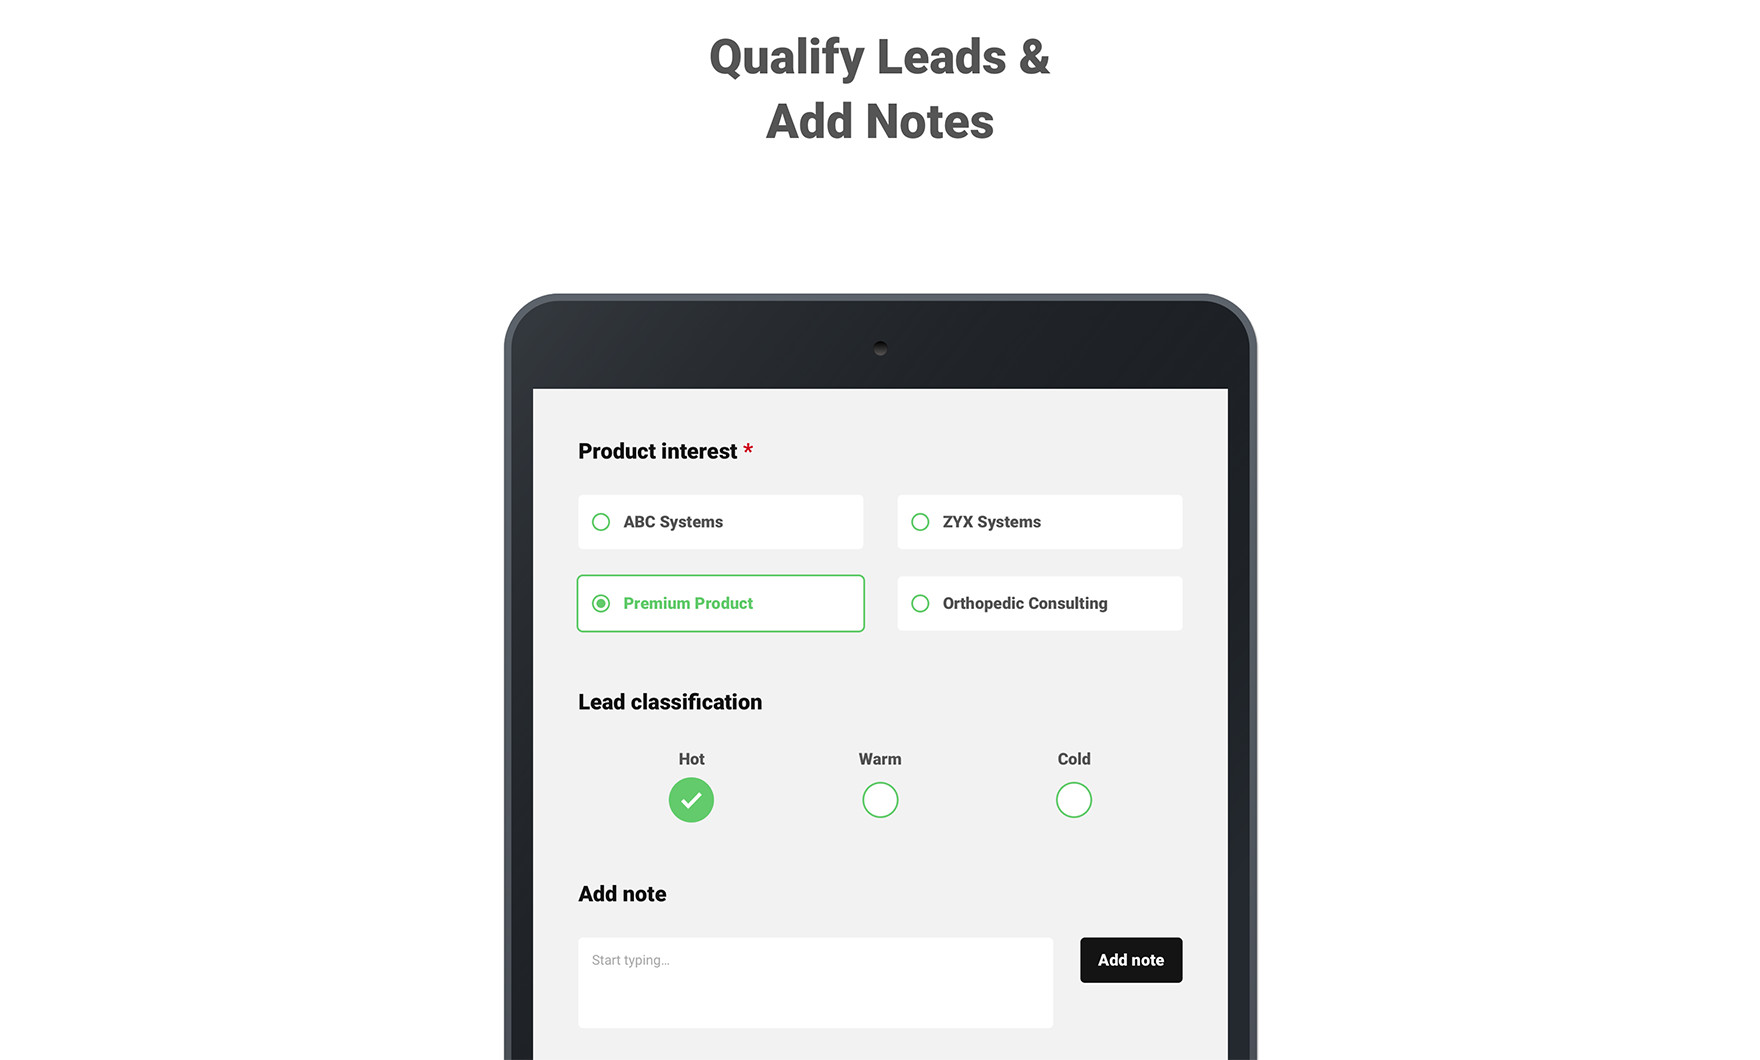 Qualify Leads & Add Notes